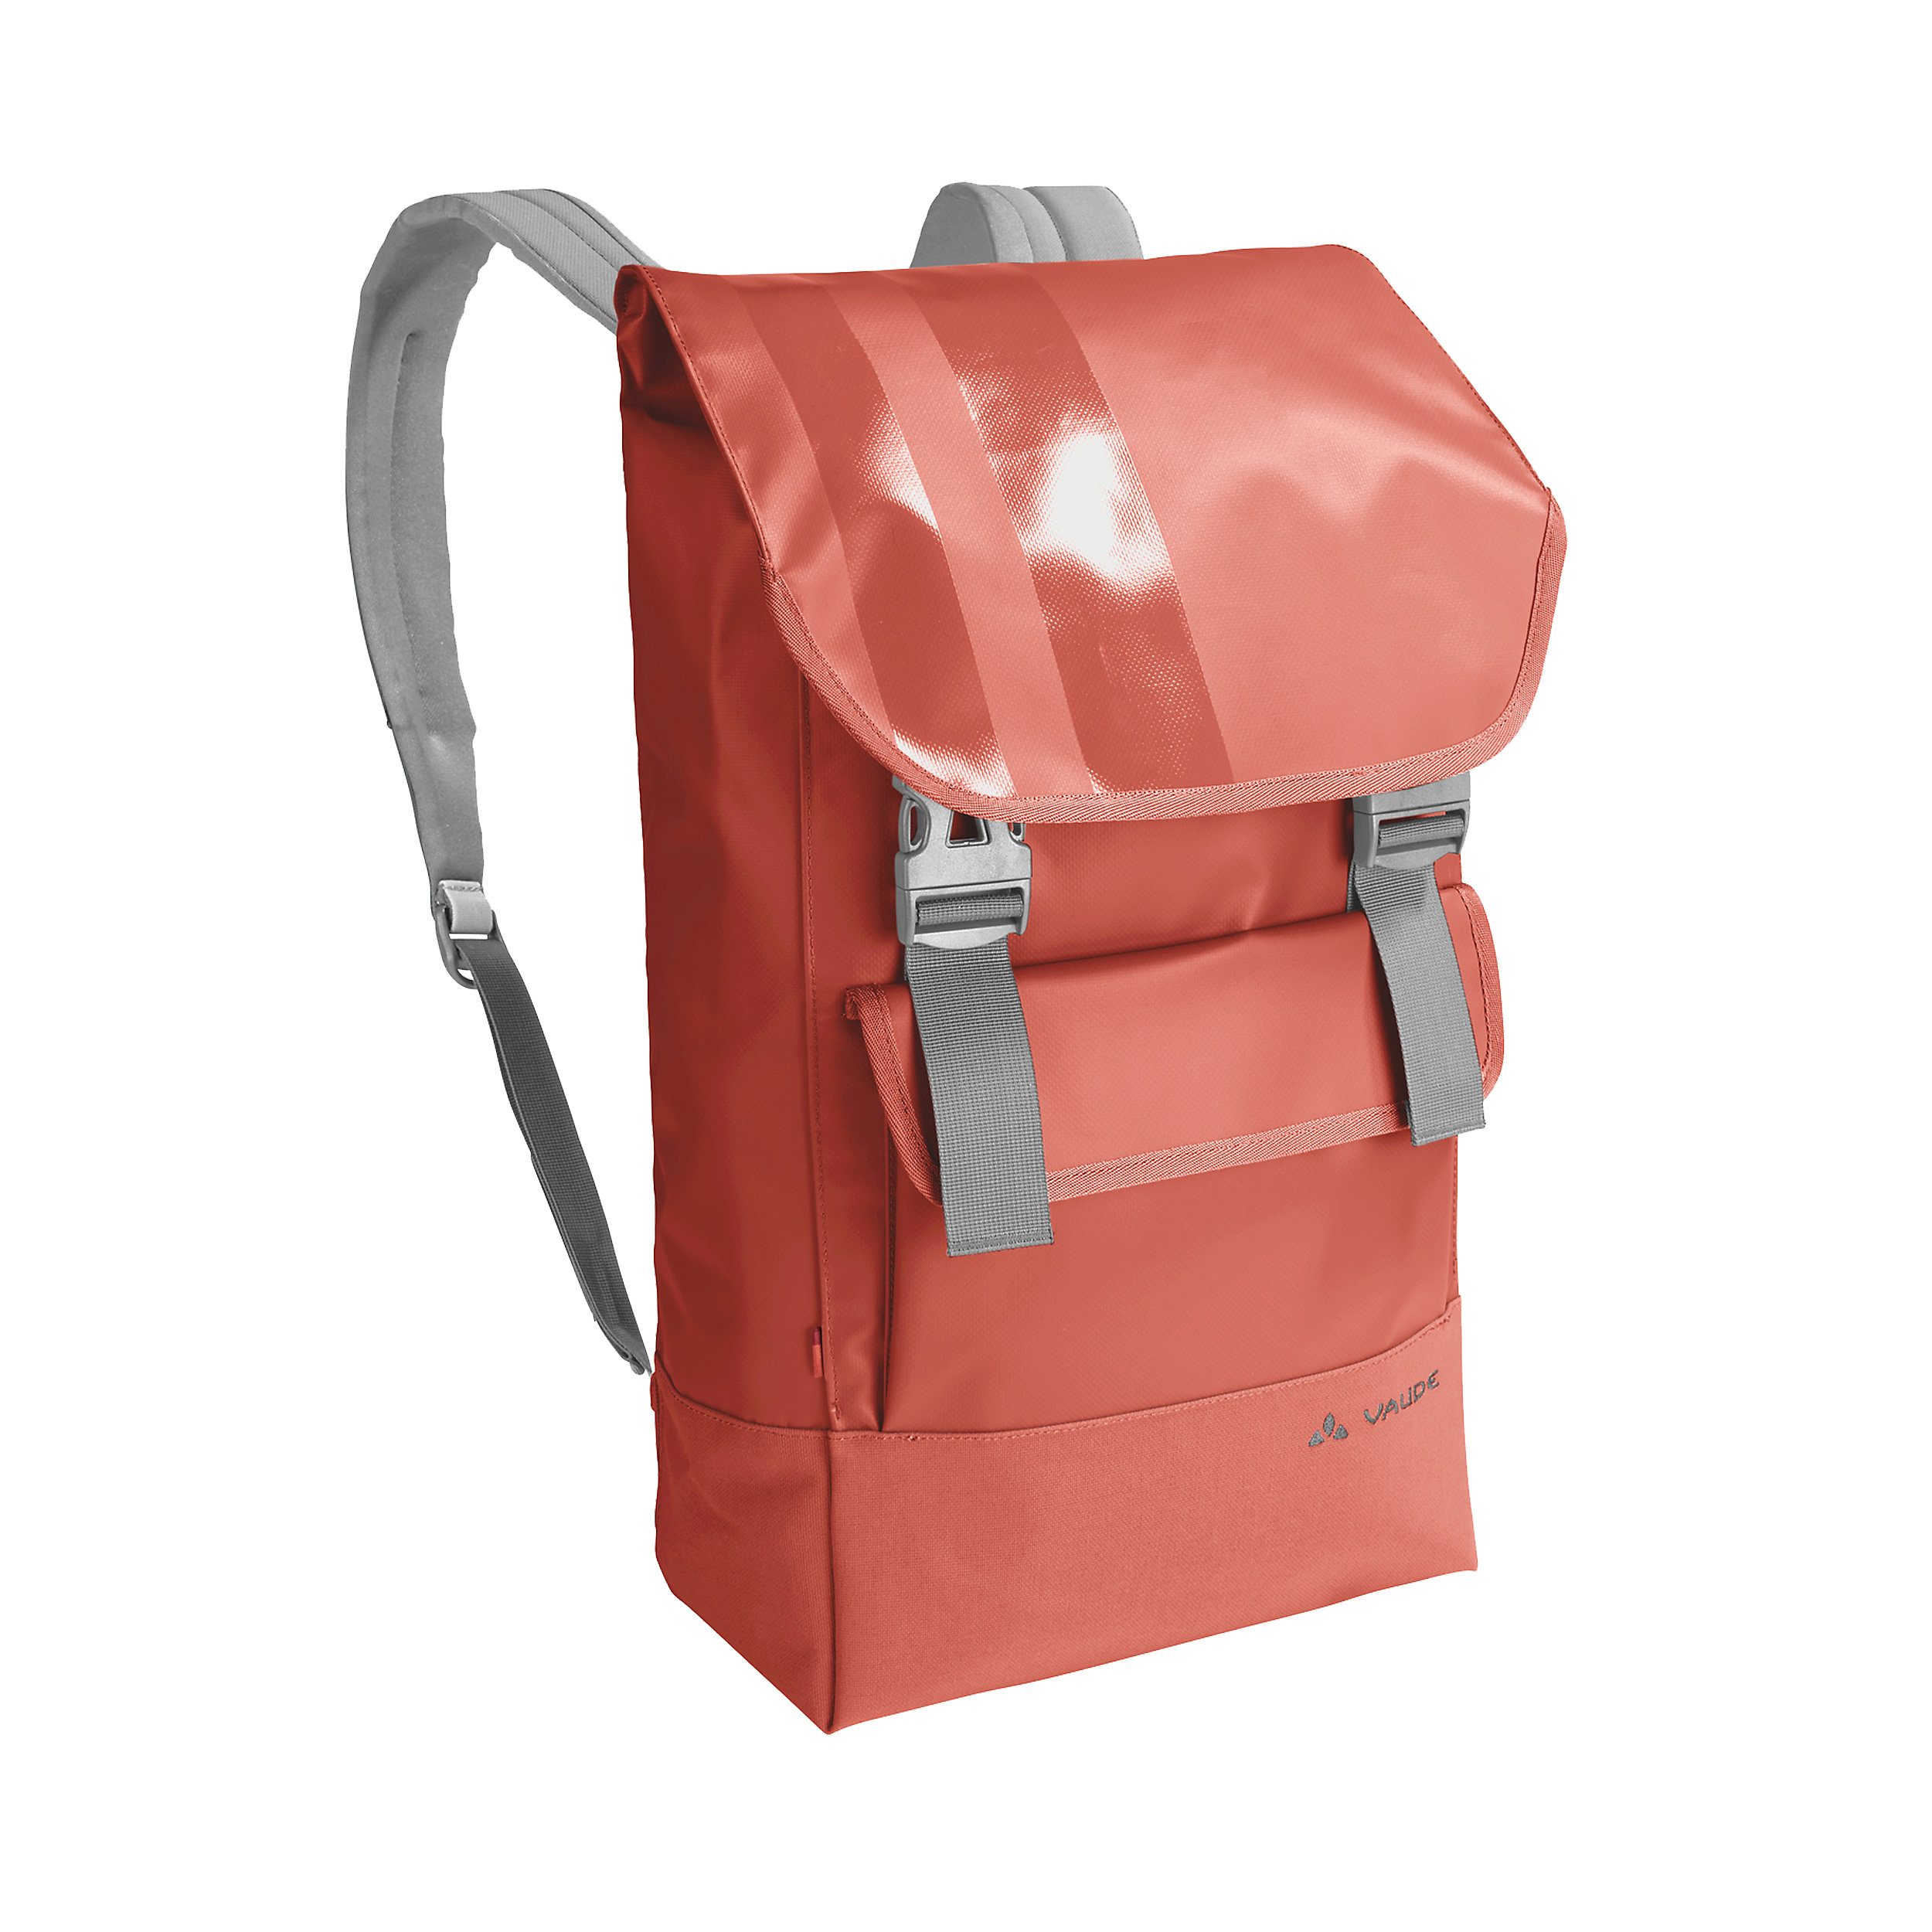 "Backpack Esk 15.6"" Wash Off 3.0 M 17 Liter"